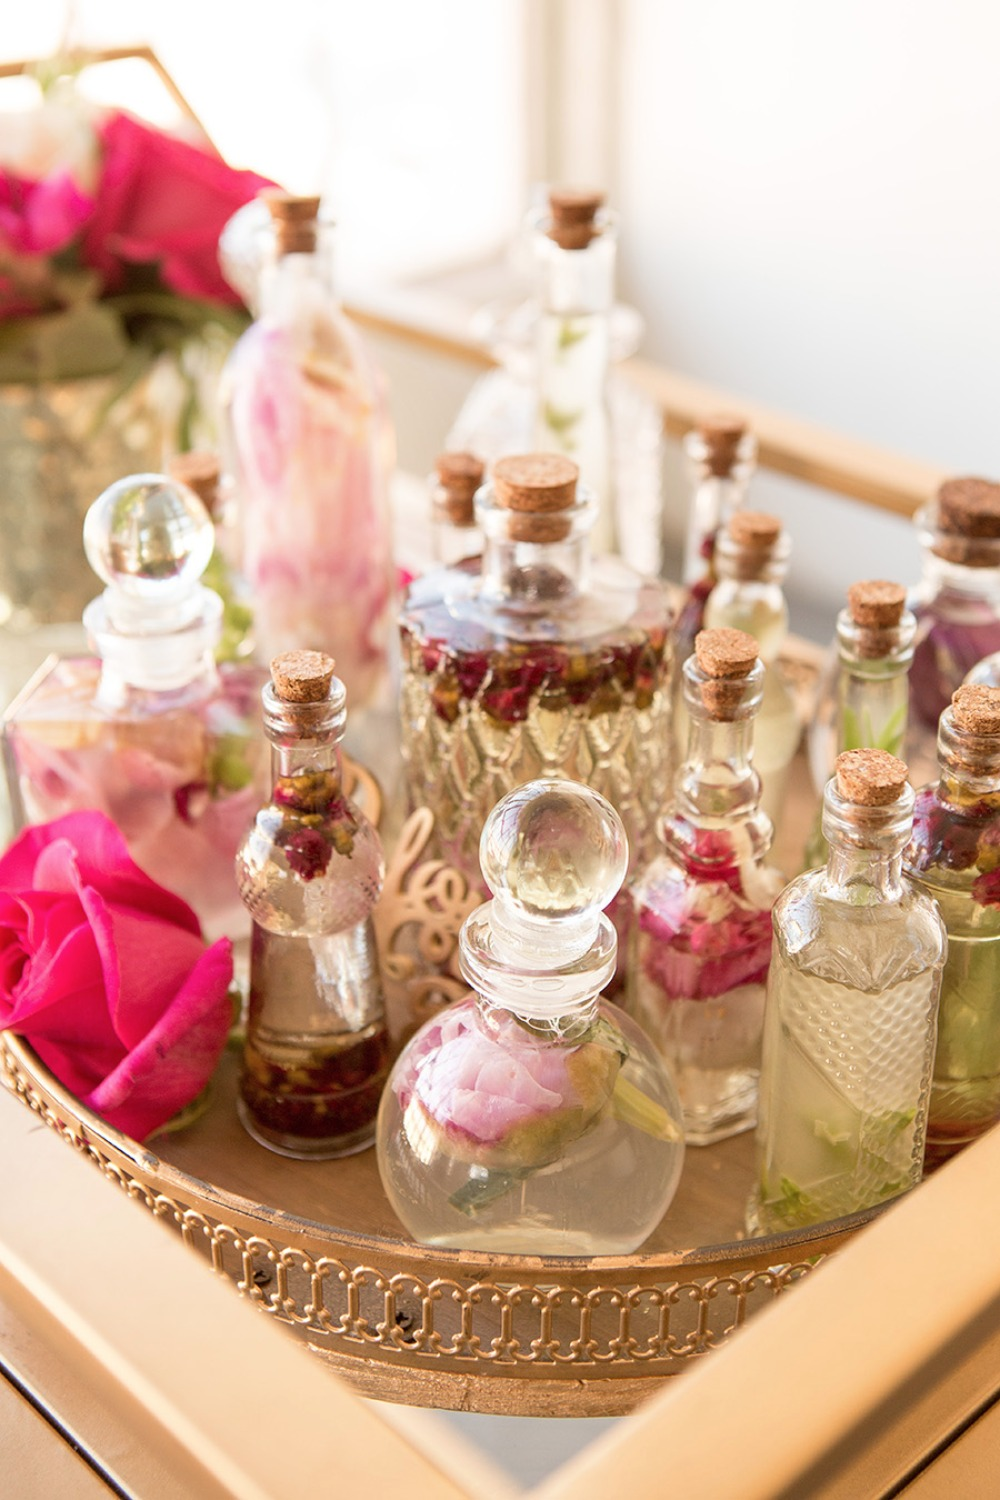 Make your own fragrance bar idea